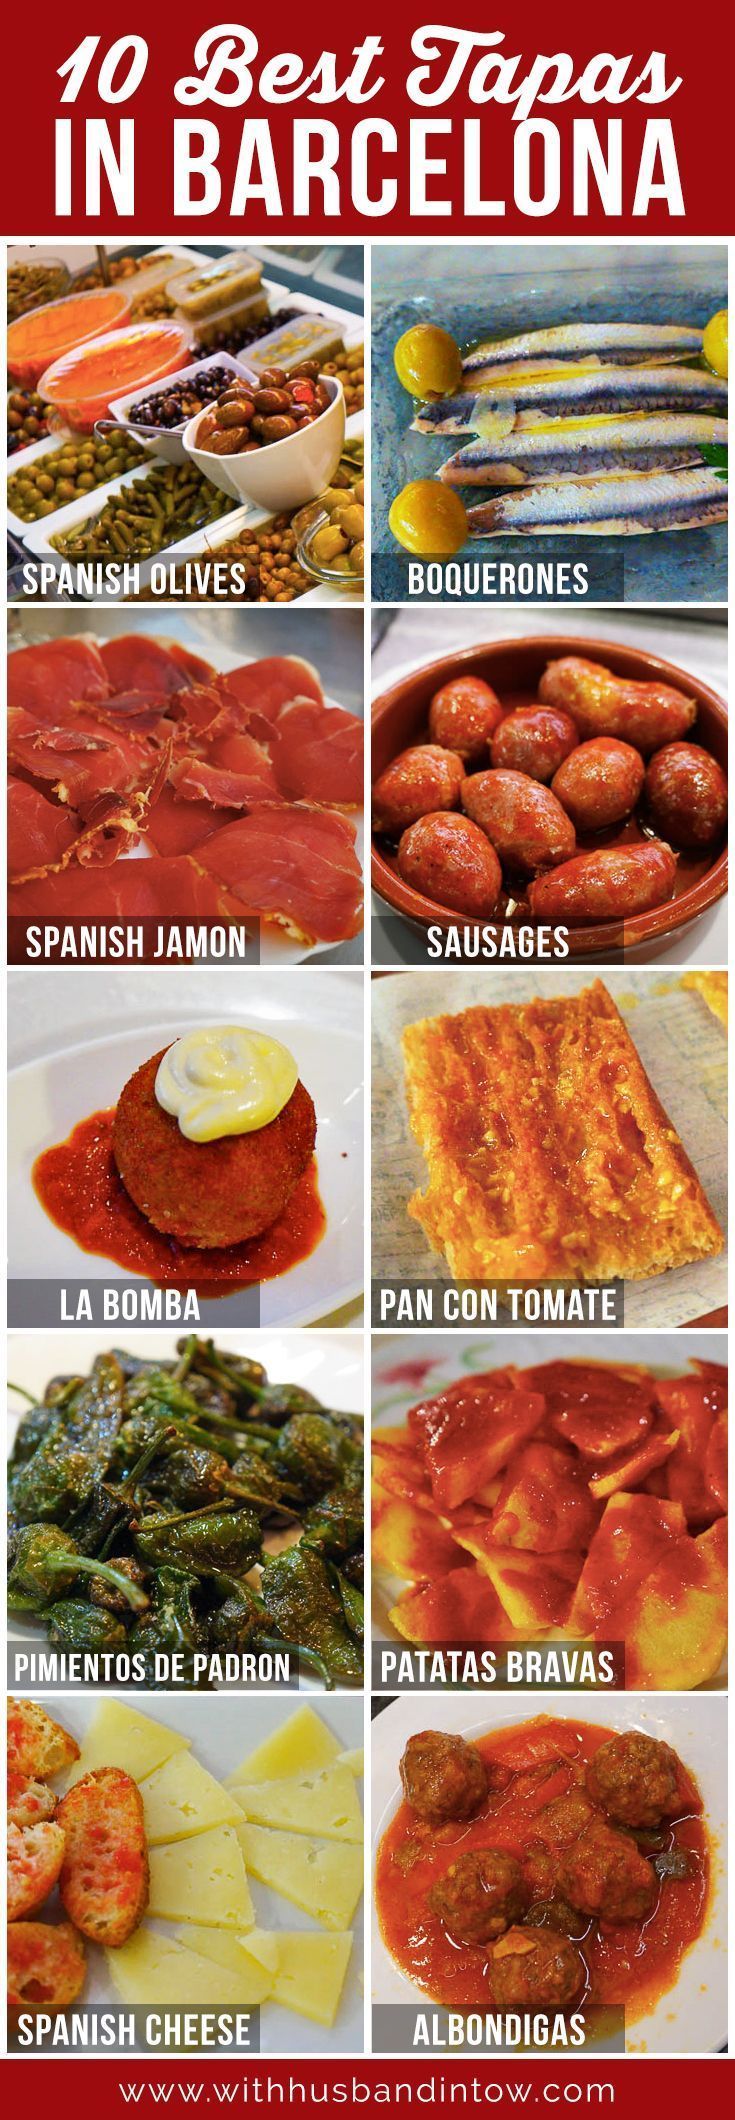 Spain, and in particular Barcelona, is one of my favorite places to eat. Check out the 10 best tapas in Barcelona! http://www.withhusbandintow.com/10-best-tapas-in-barcelona/ #Food #Travel #Spain